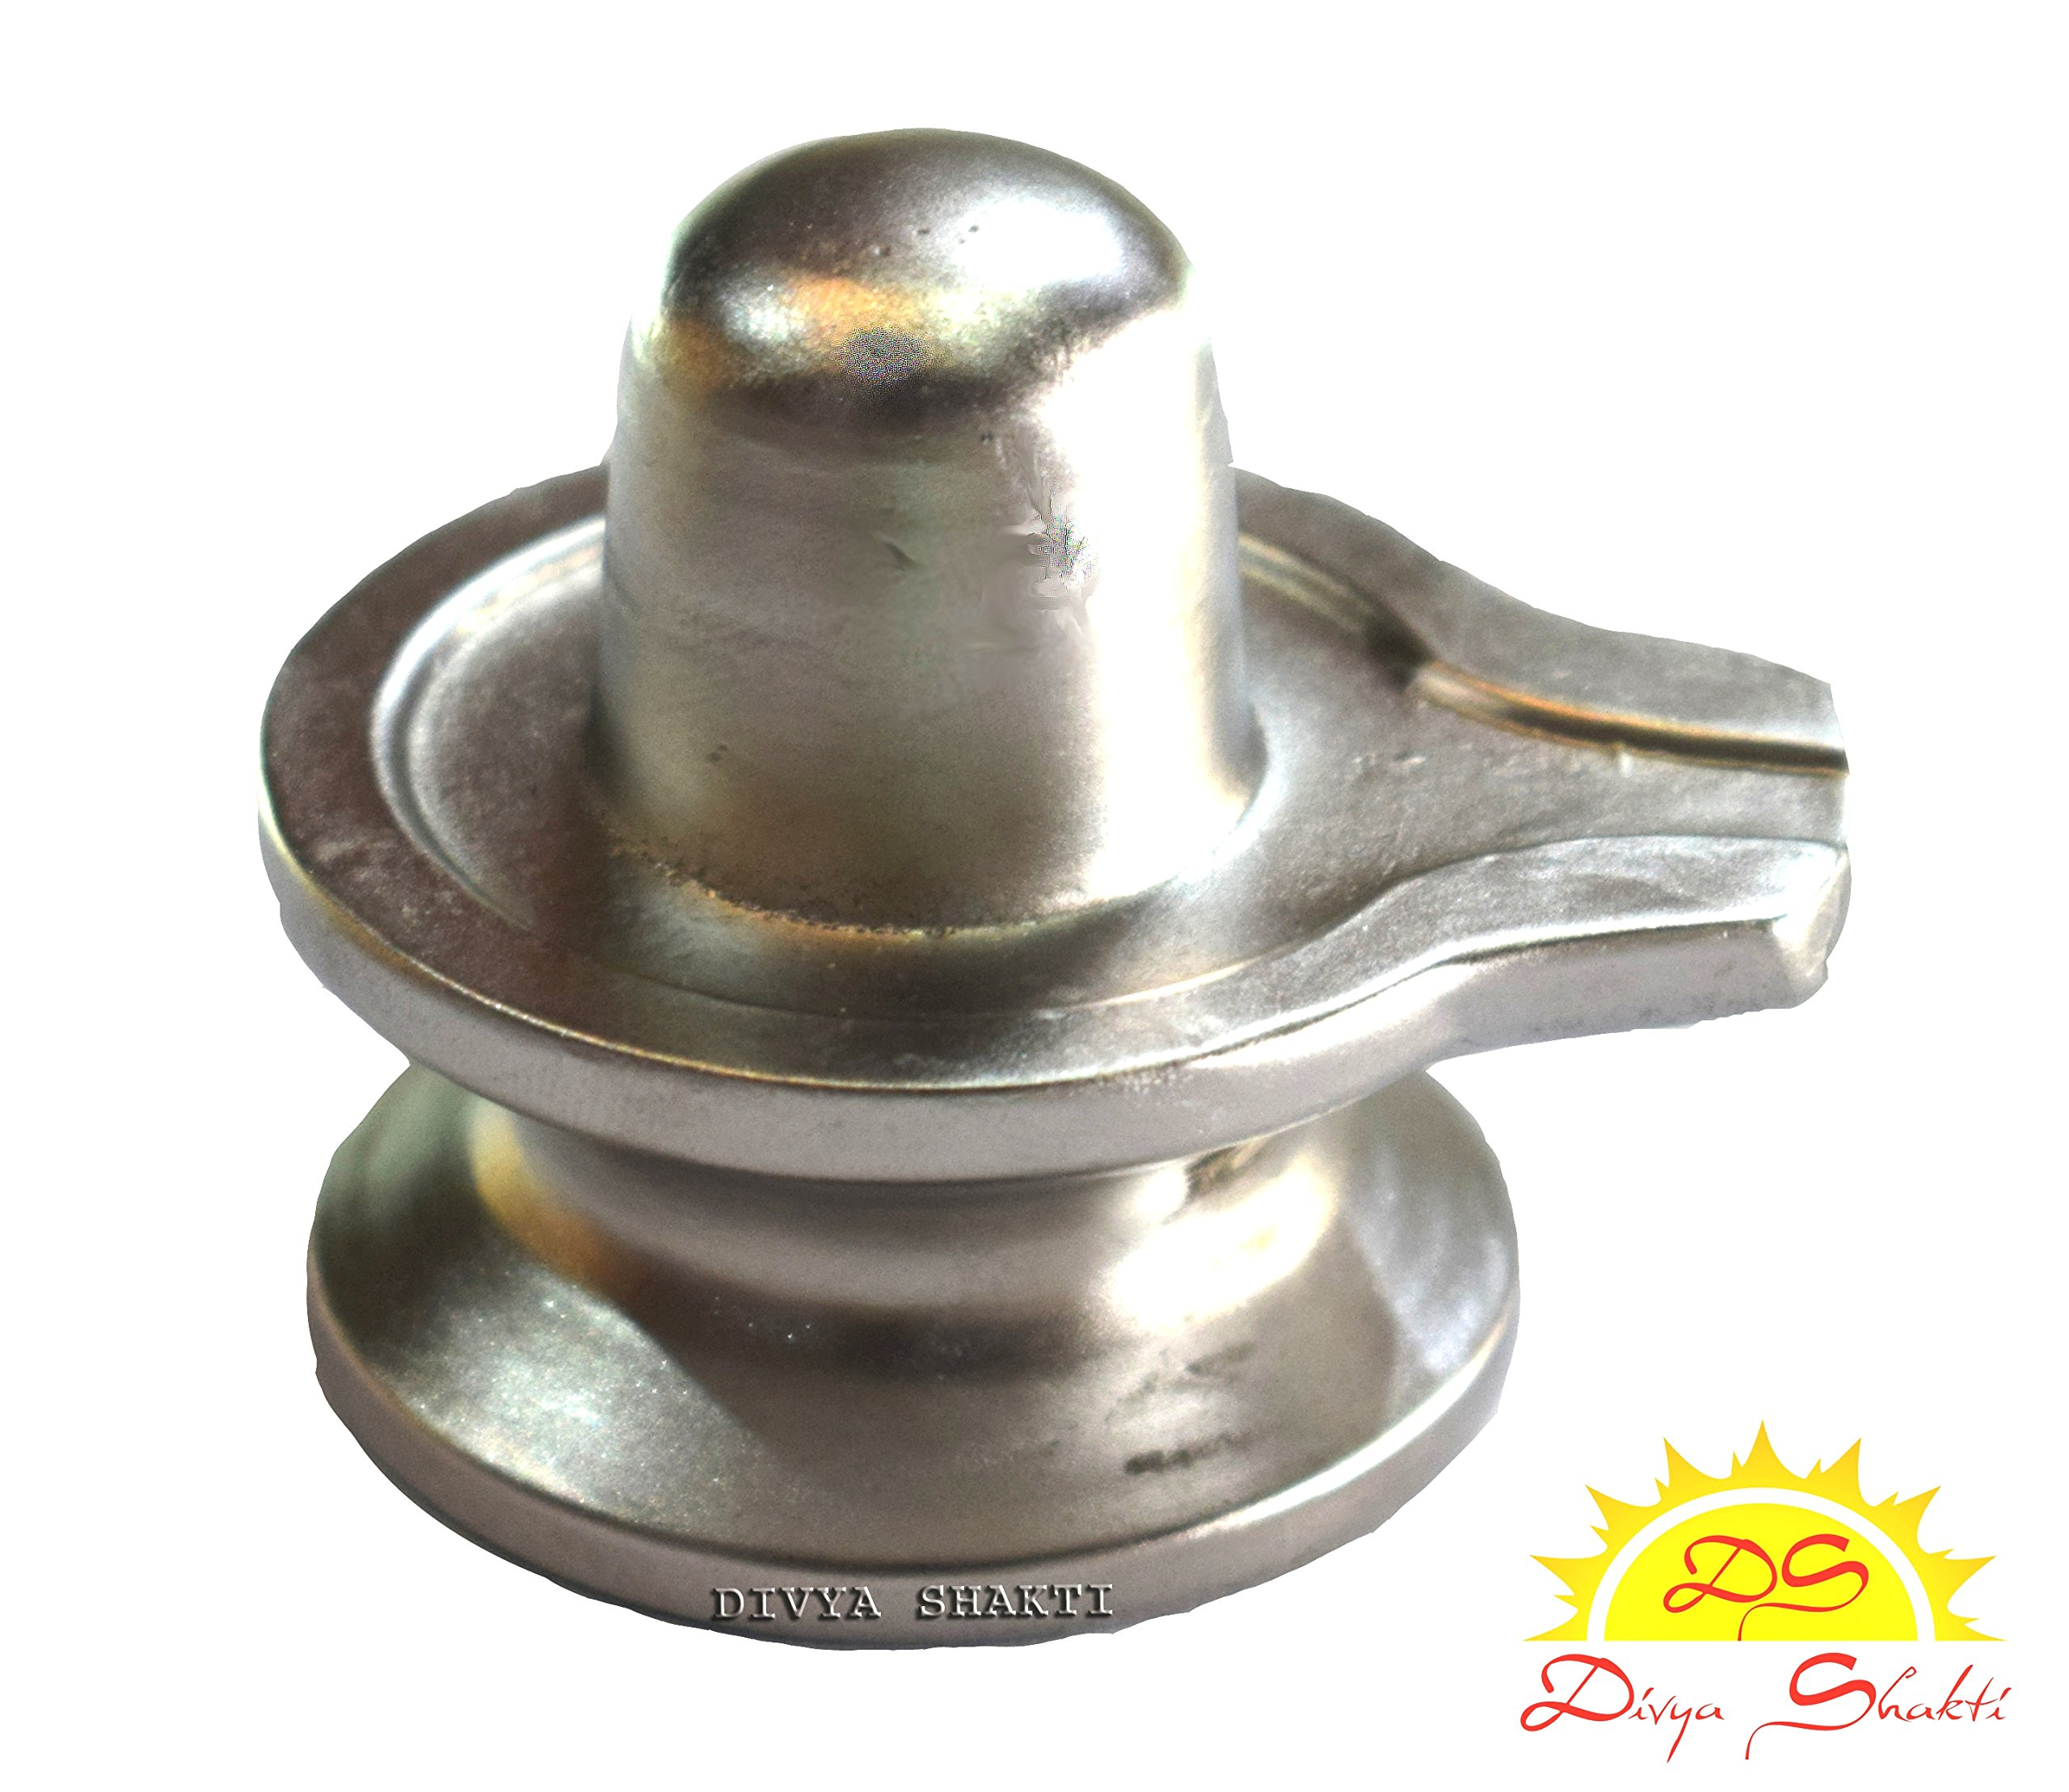 Divya Shakti 100 % Pure Healing Parad shivling AAA QUALITY ( 50 grams) Lord Shiva's Parad shivlingam ( Indian products from India )